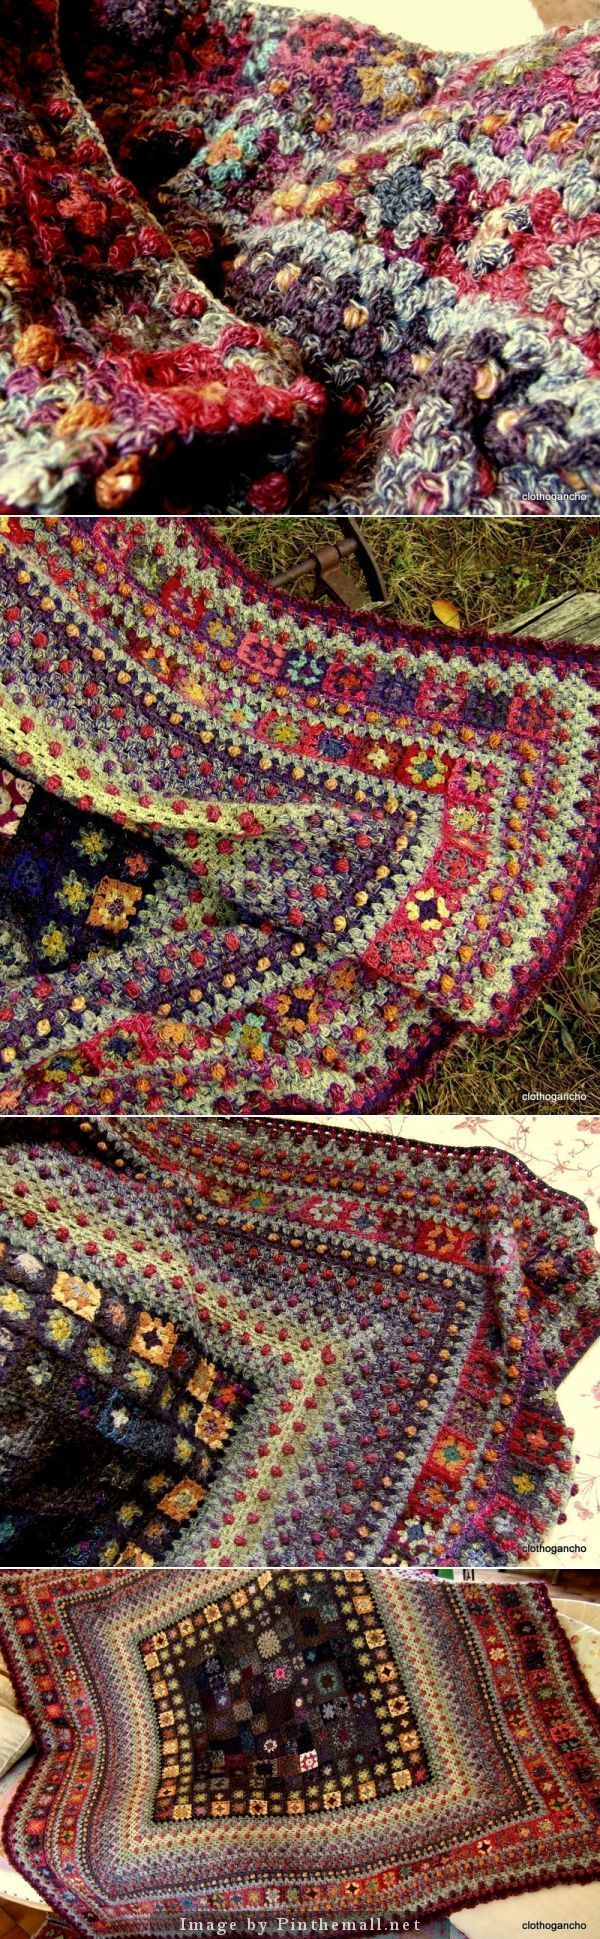 """""""#Crochet - Granny Squares can sometimes seem repetitious, but not in this extraordinary blanket! It looks like an oriental rug."""